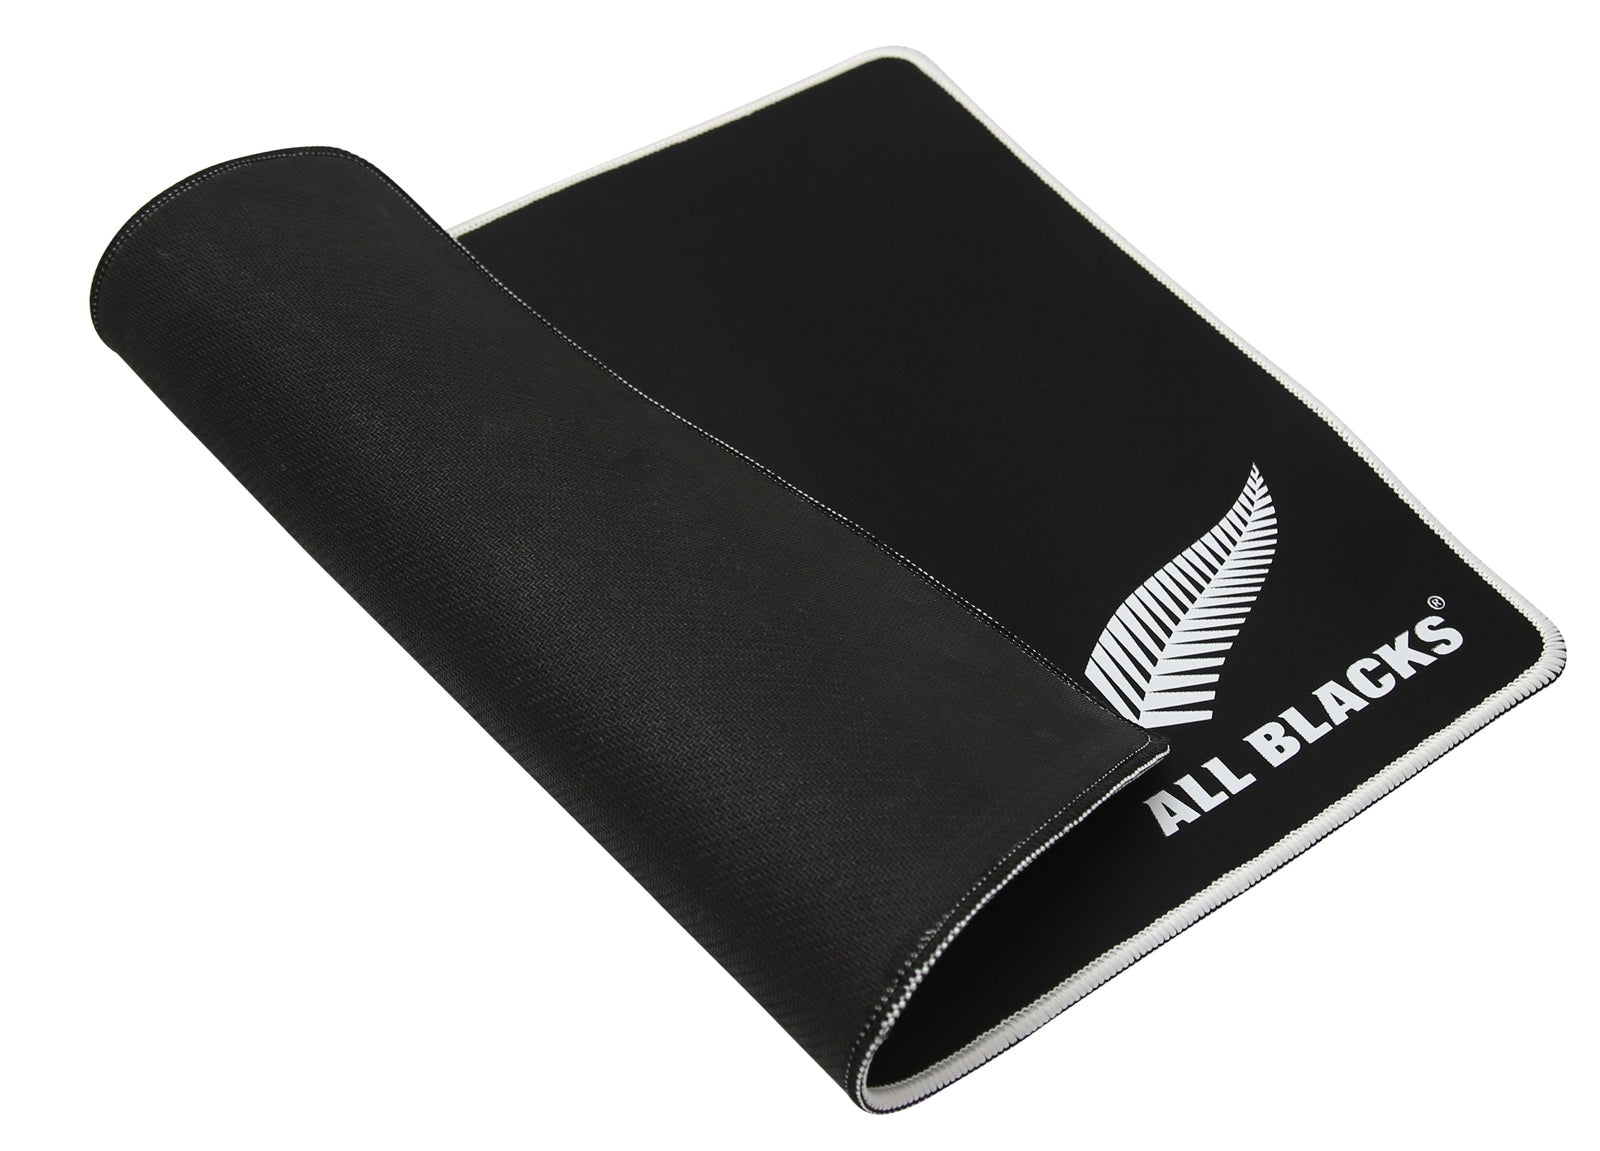 Playmax Mouse Mat X1 - All Blacks Edition - PC Games